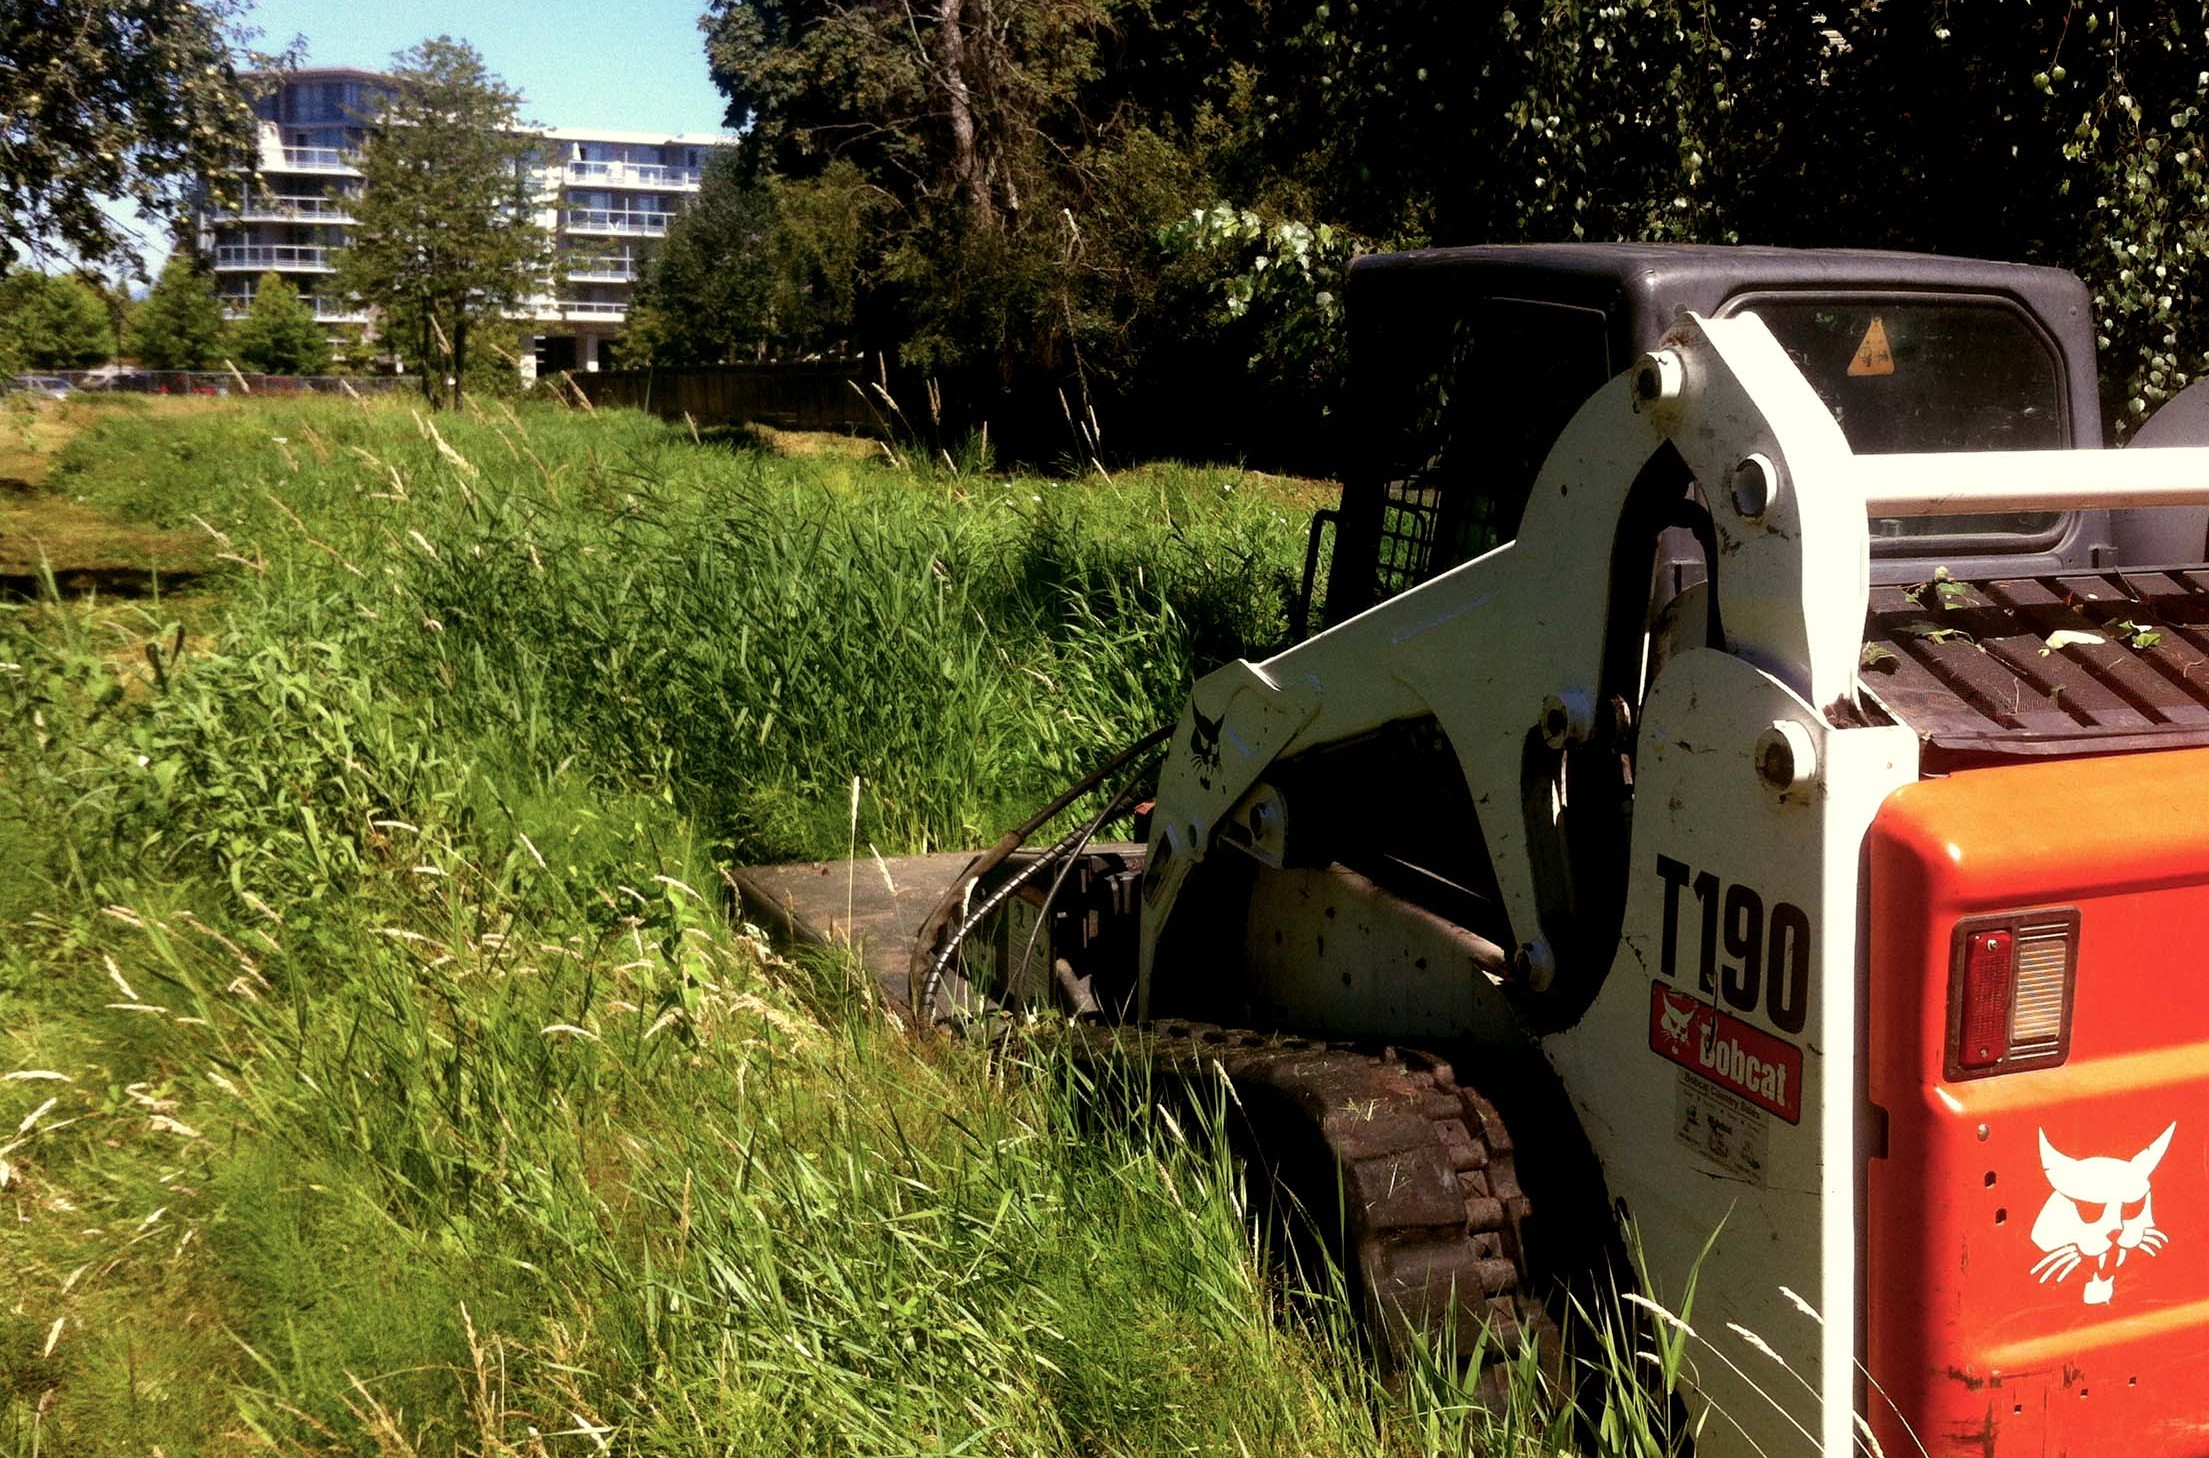 Rough mowing